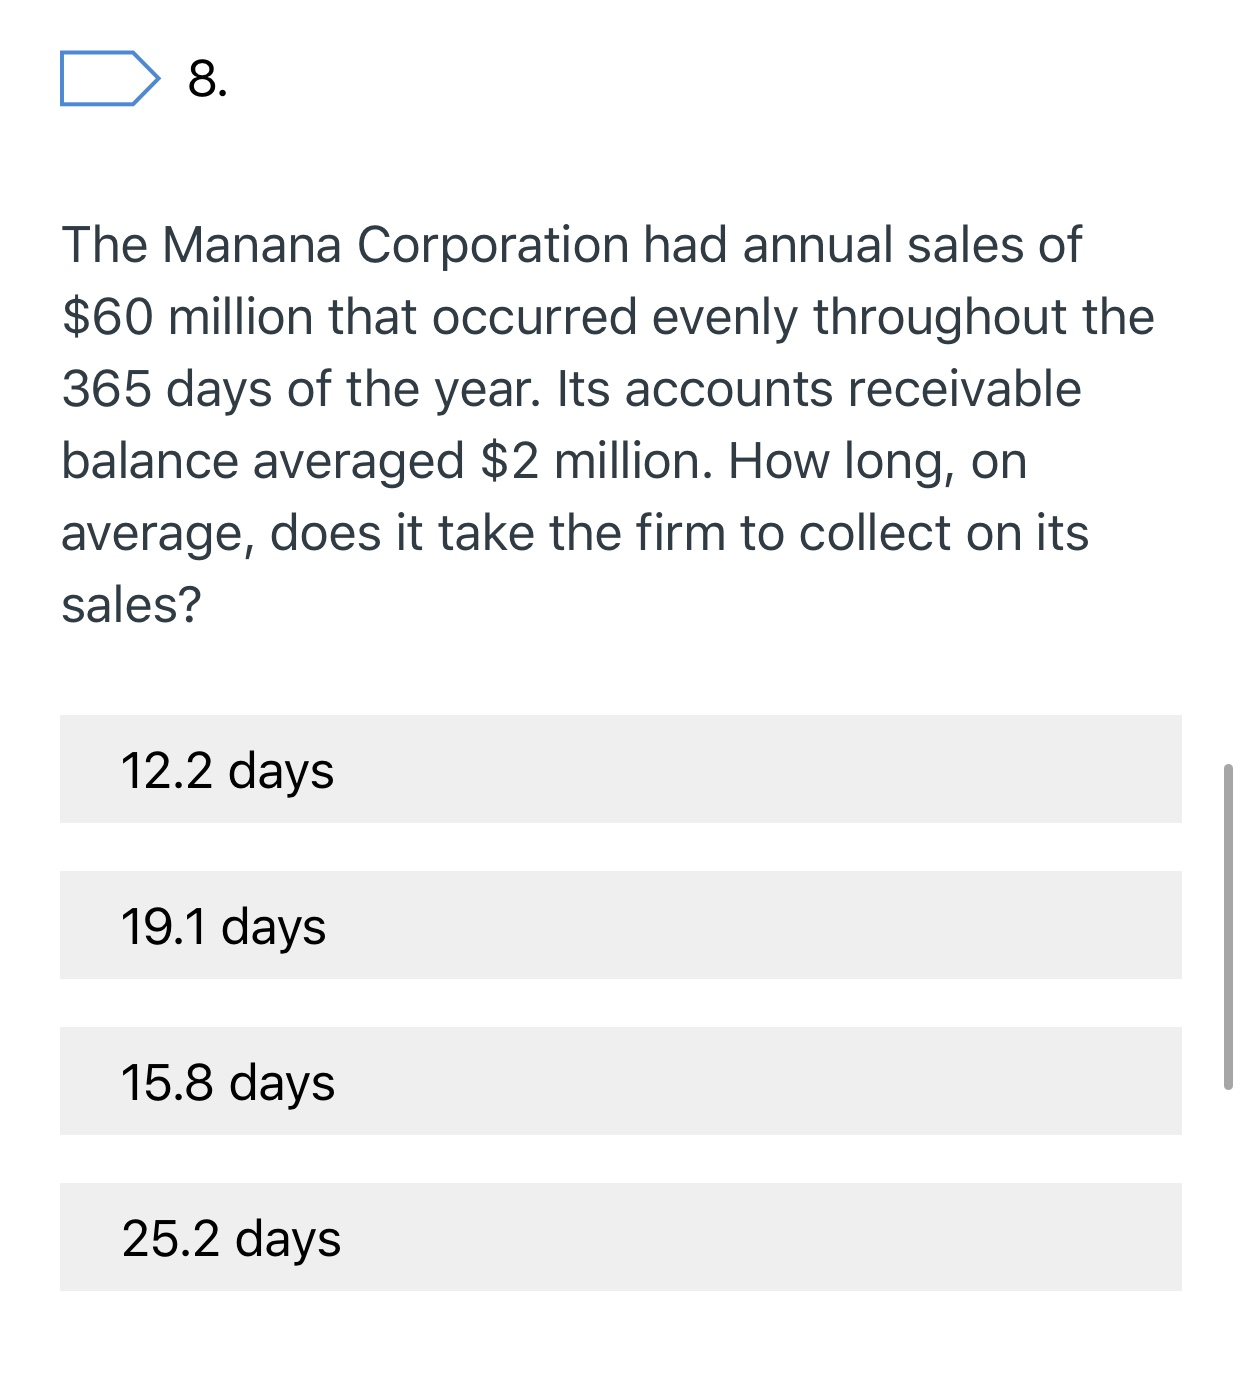 8 The Manana Corporation had annual sales of $60 million that occurred evenly throughout the 365 days of the year. Its accounts receivable balance averaged $2 million. How long, on average, does it take the firm to collect on its sales? 12.2 days 19.1 days 15.8 days 25.2 days